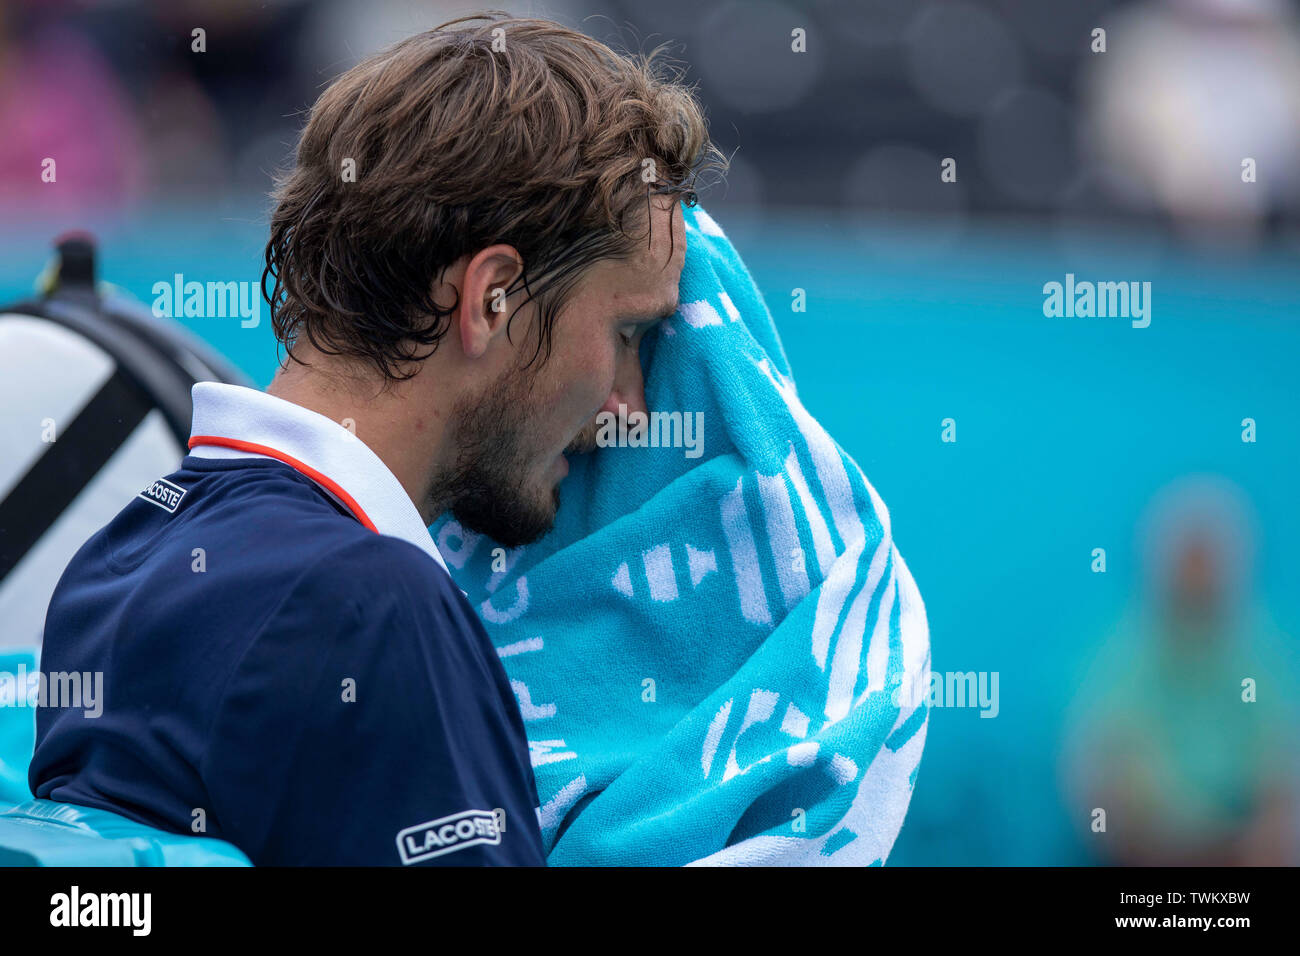 Queen Club, London, UK. 21st June, 2019. The ATP Fever-Tree Tennis Tournament; Daniil Medvedev (RUS) towels off during the break against Diego Schwartzman (ARG) Credit: Action Plus Sports/Alamy Live News Stock Photo